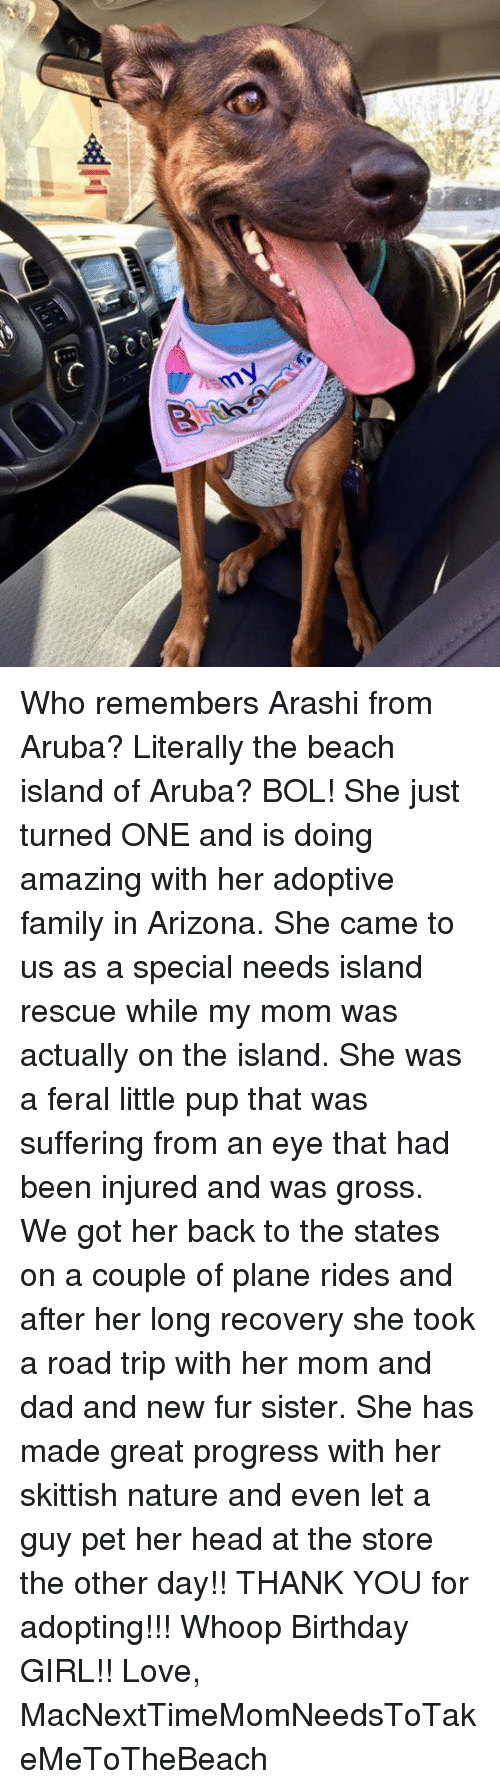 Birthday, Dad, and Family: Who remembers Arashi from Aruba? Literally the beach island of Aruba? BOL! She just turned ONE and is doing amazing with her adoptive family in Arizona. She came to us as a special needs island rescue while my mom was actually on the island. She was a feral little pup that was suffering from an eye that had been injured and was gross. We got her back to the states on a couple of plane rides and after her long recovery she took a road trip with her mom and dad and new fur sister. She has made great progress with her skittish nature and even let a guy pet her head at the store the other day!! THANK YOU for adopting!!! Whoop Birthday GIRL!!   Love, MacNextTimeMomNeedsToTakeMeToTheBeach